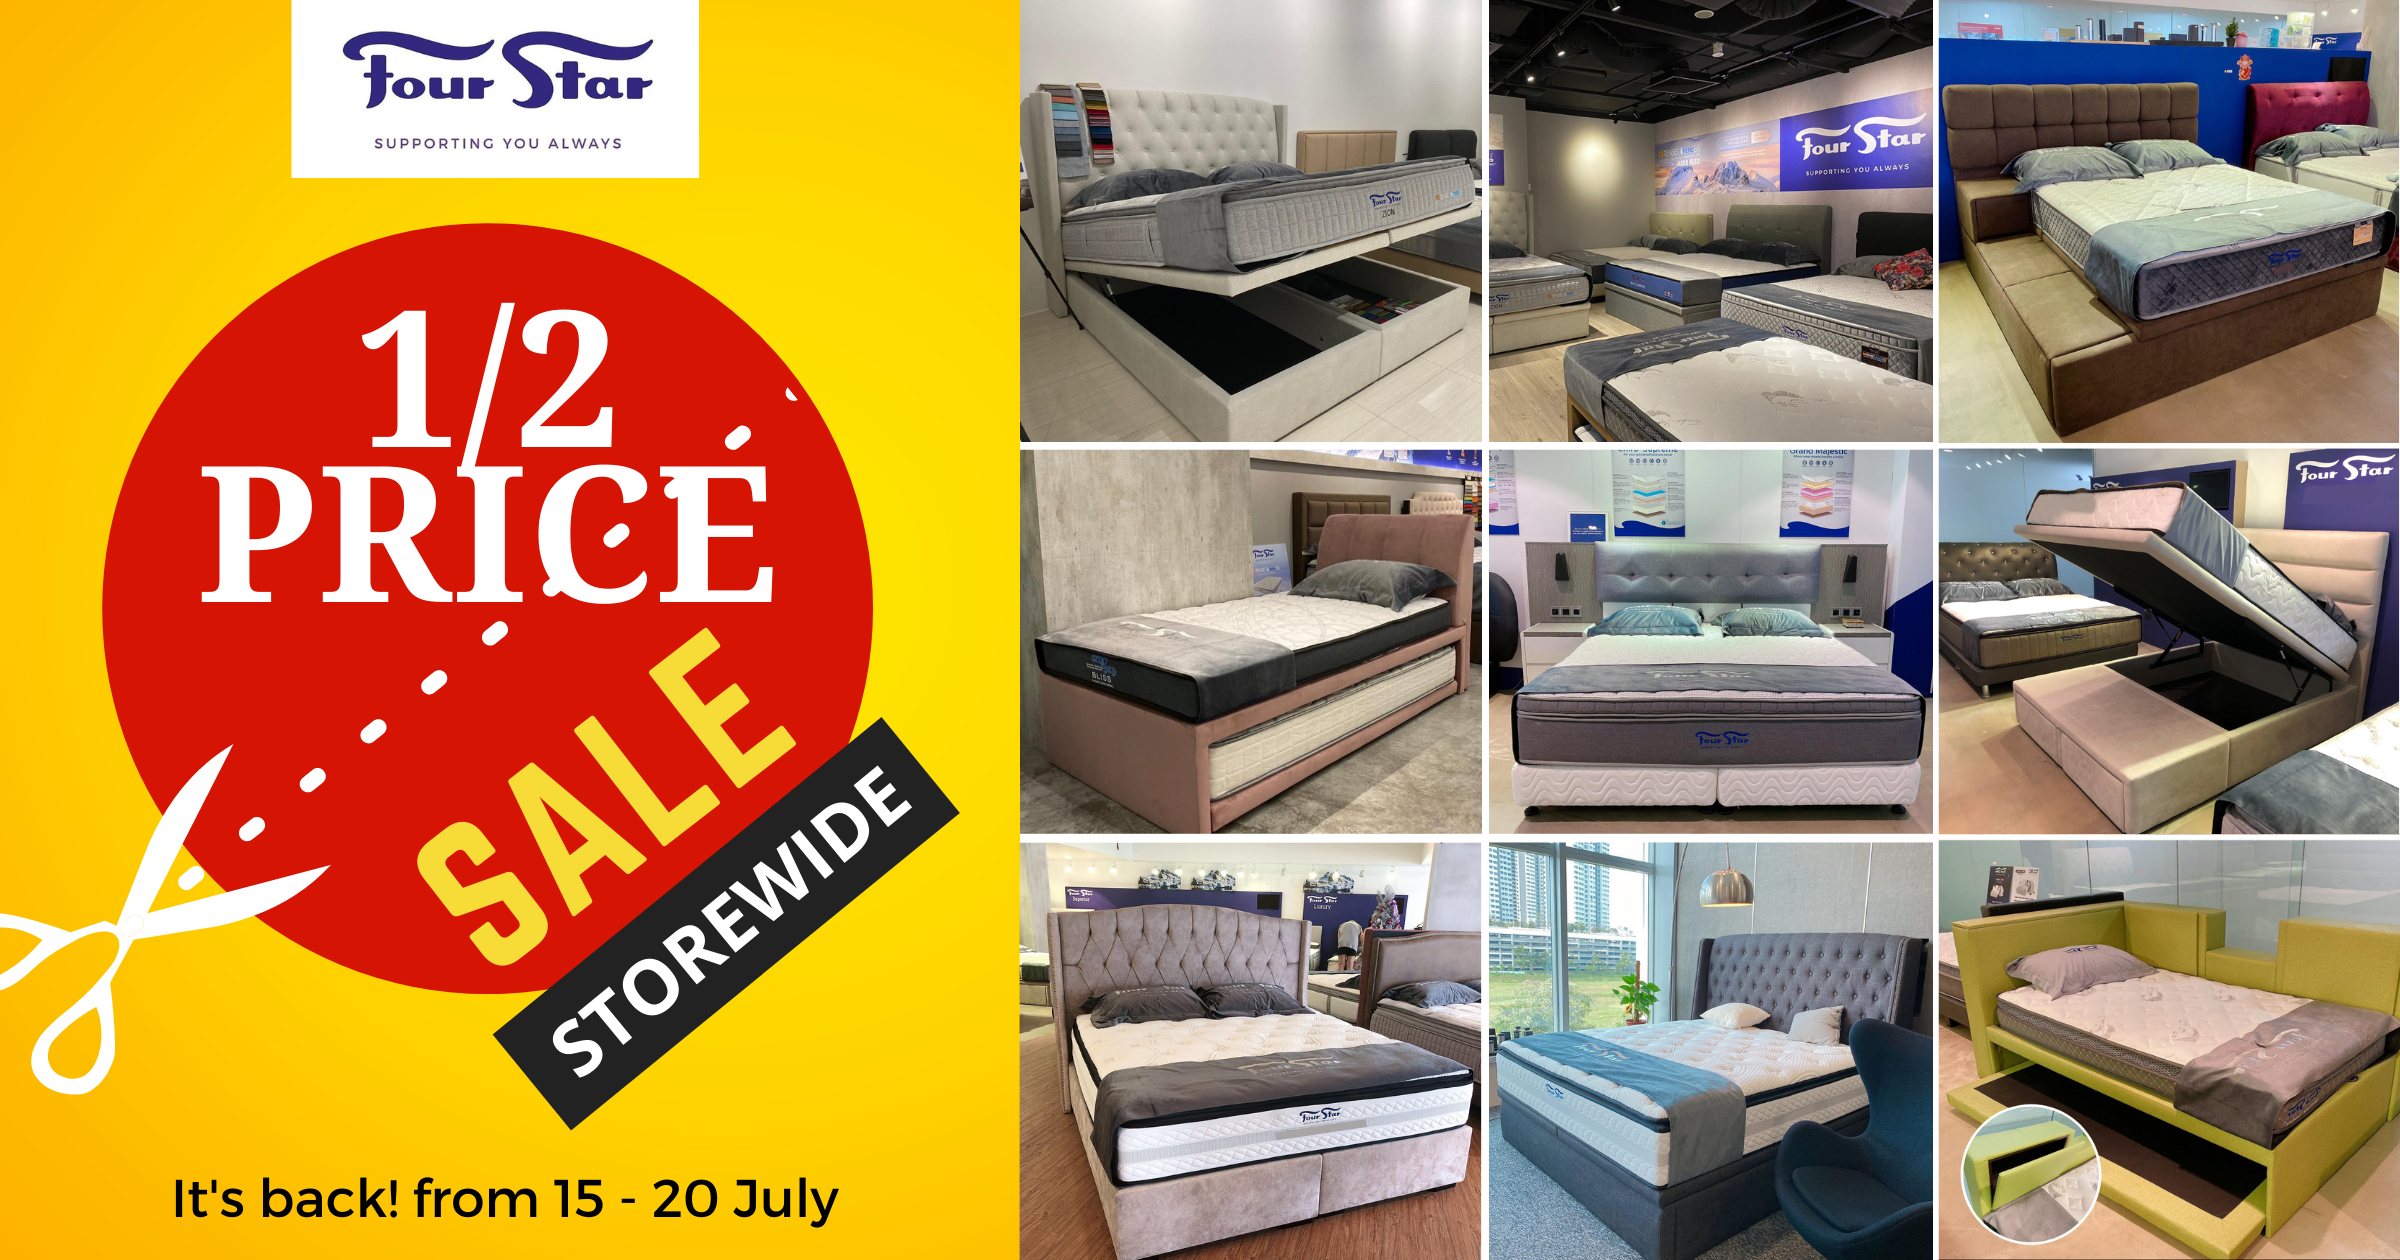 Four Star Half Price Sale is back from 15 July – 20 July